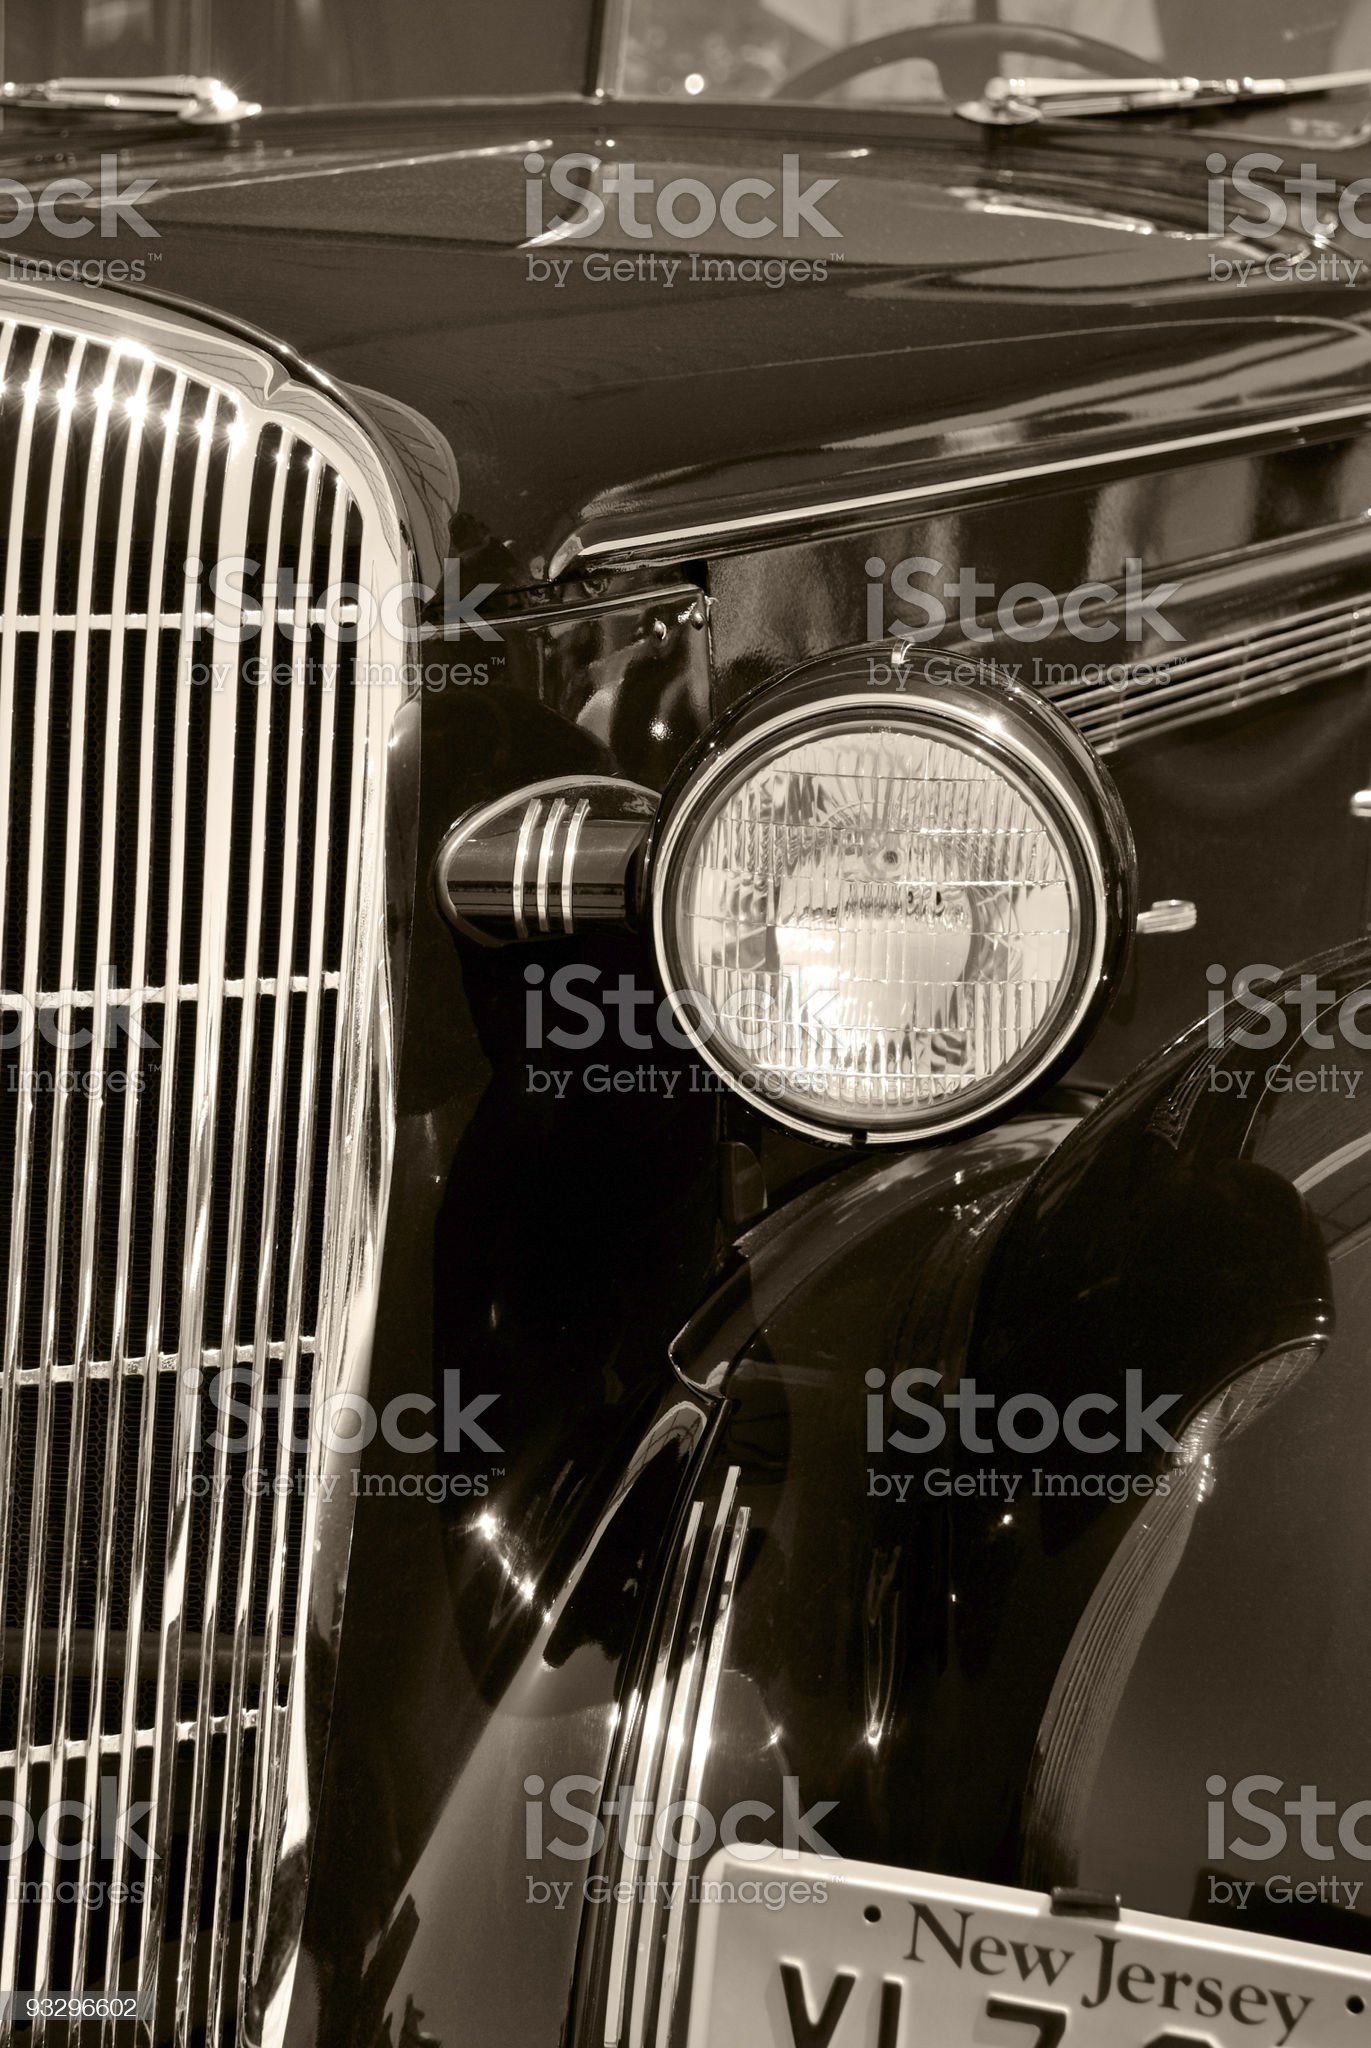 The old vintage american car royalty-free stock photo